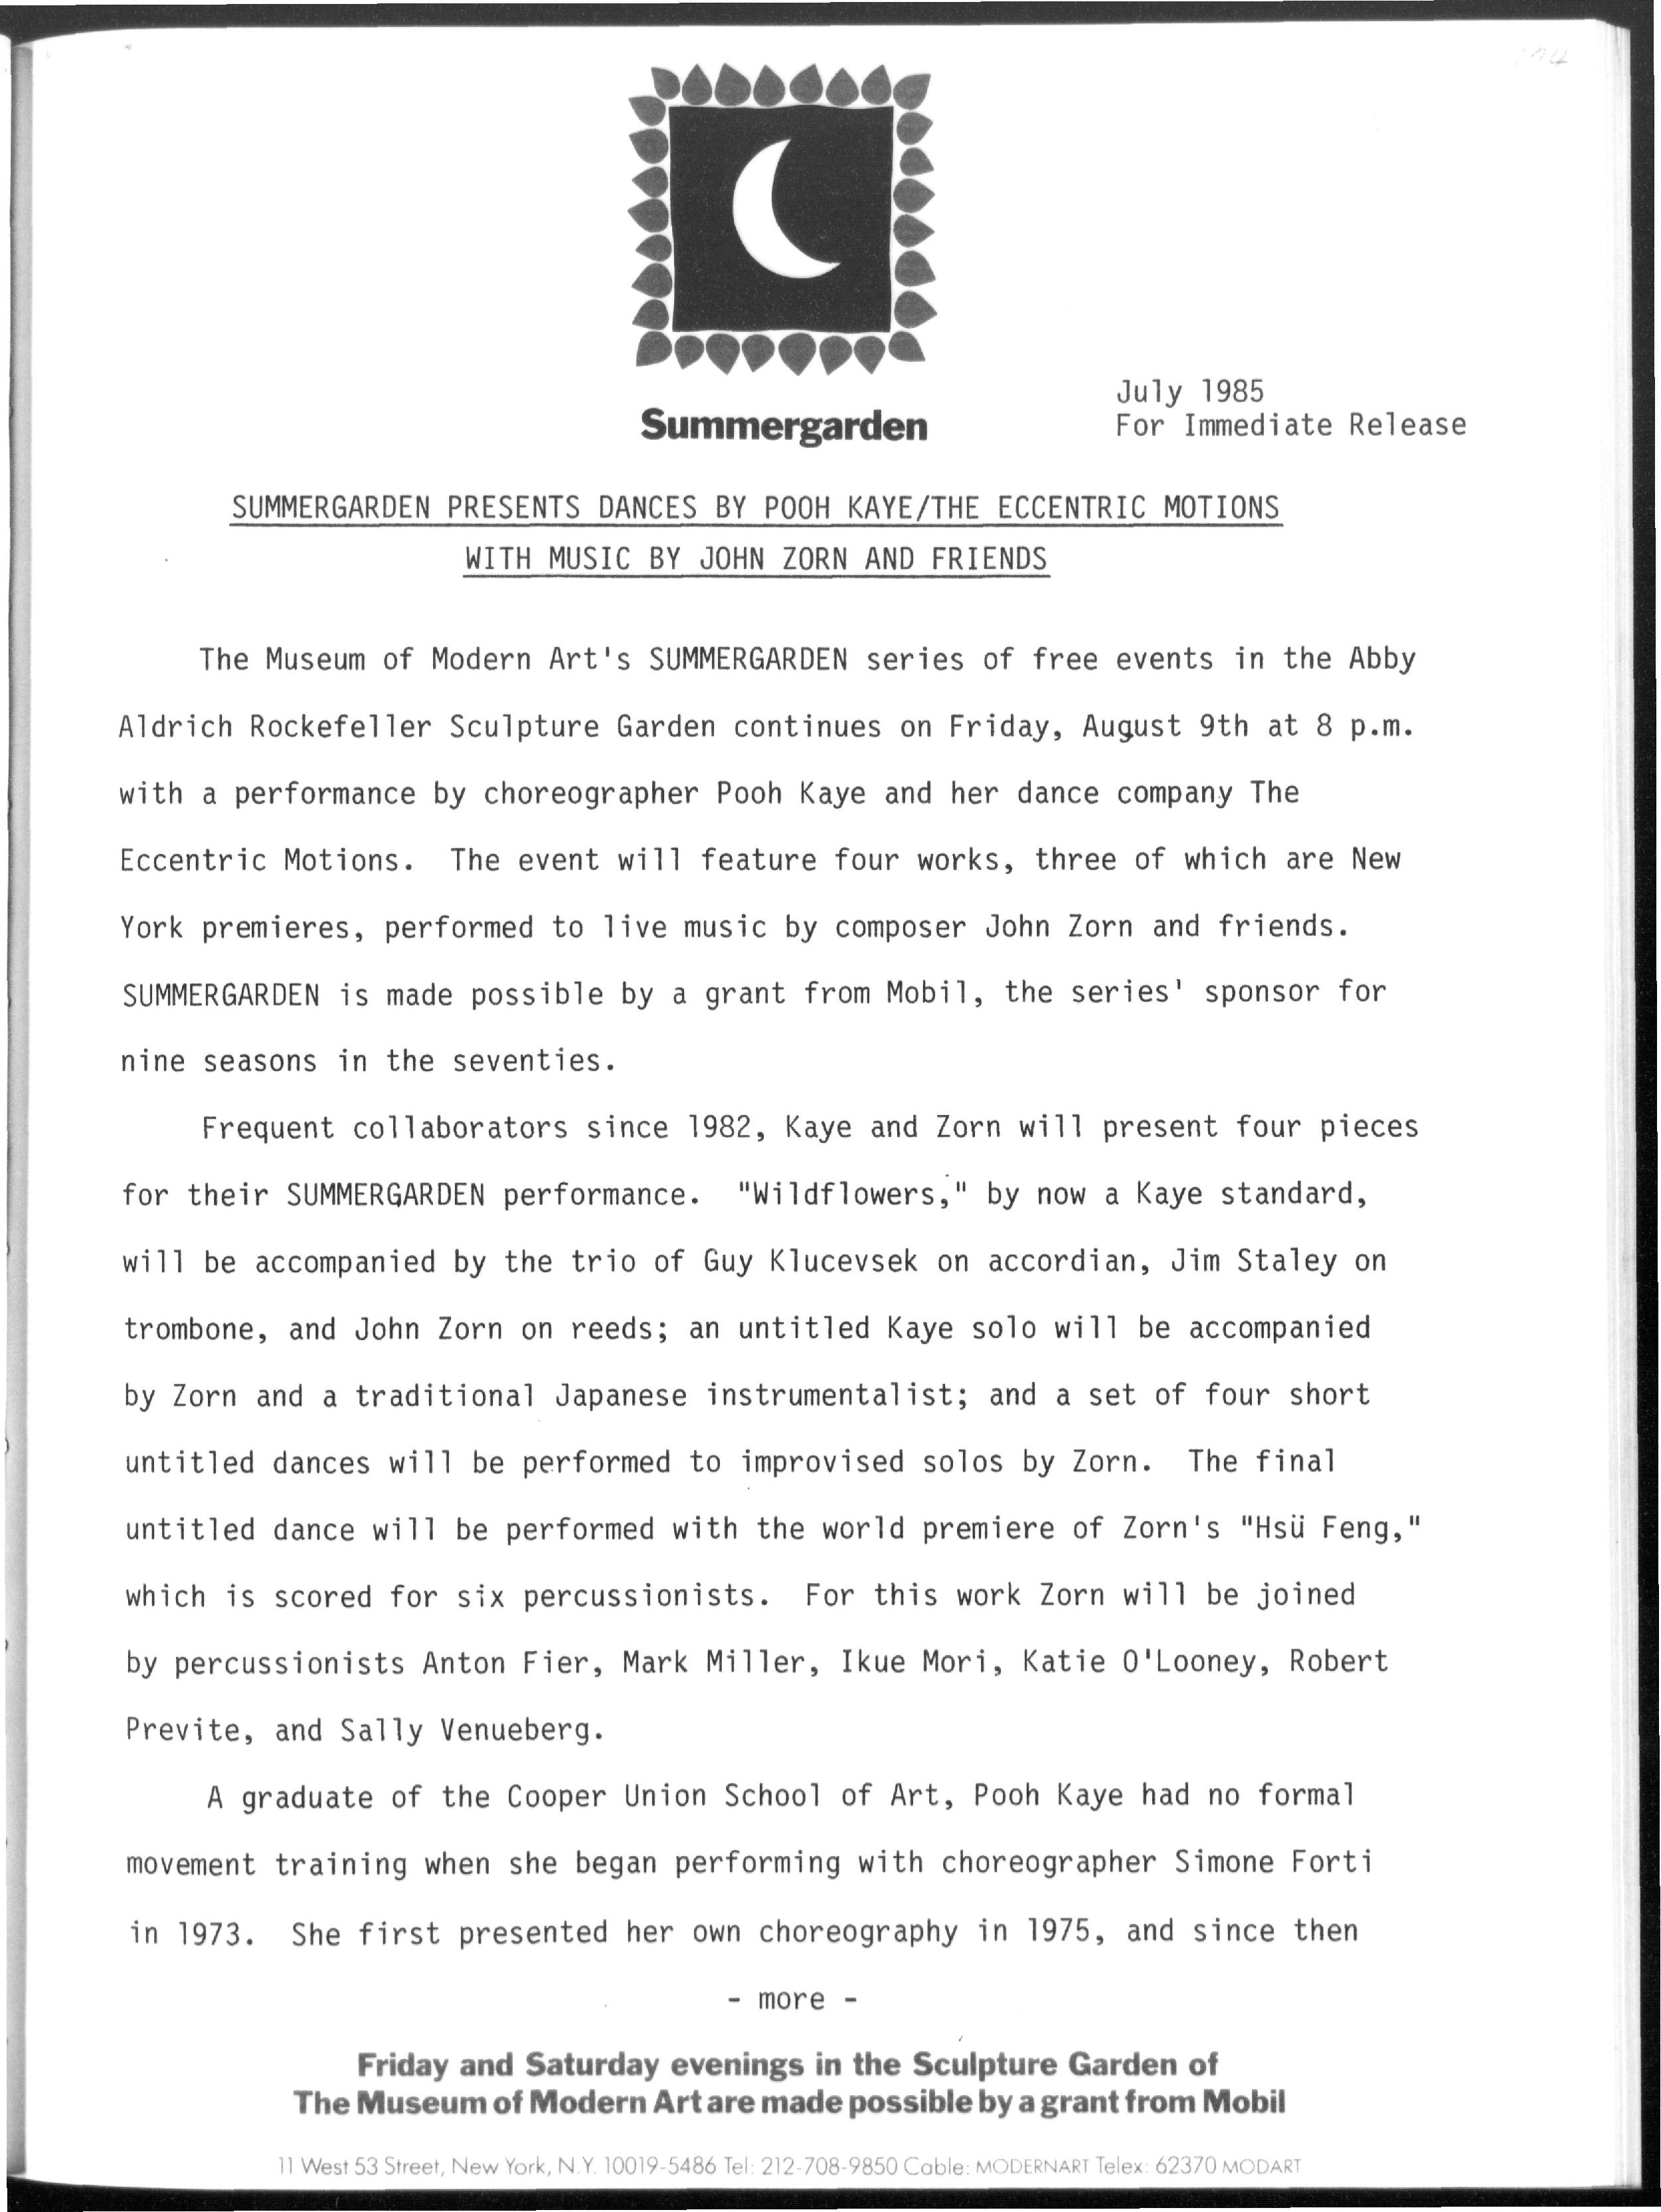 MOMA_1985_0061_60-page-001